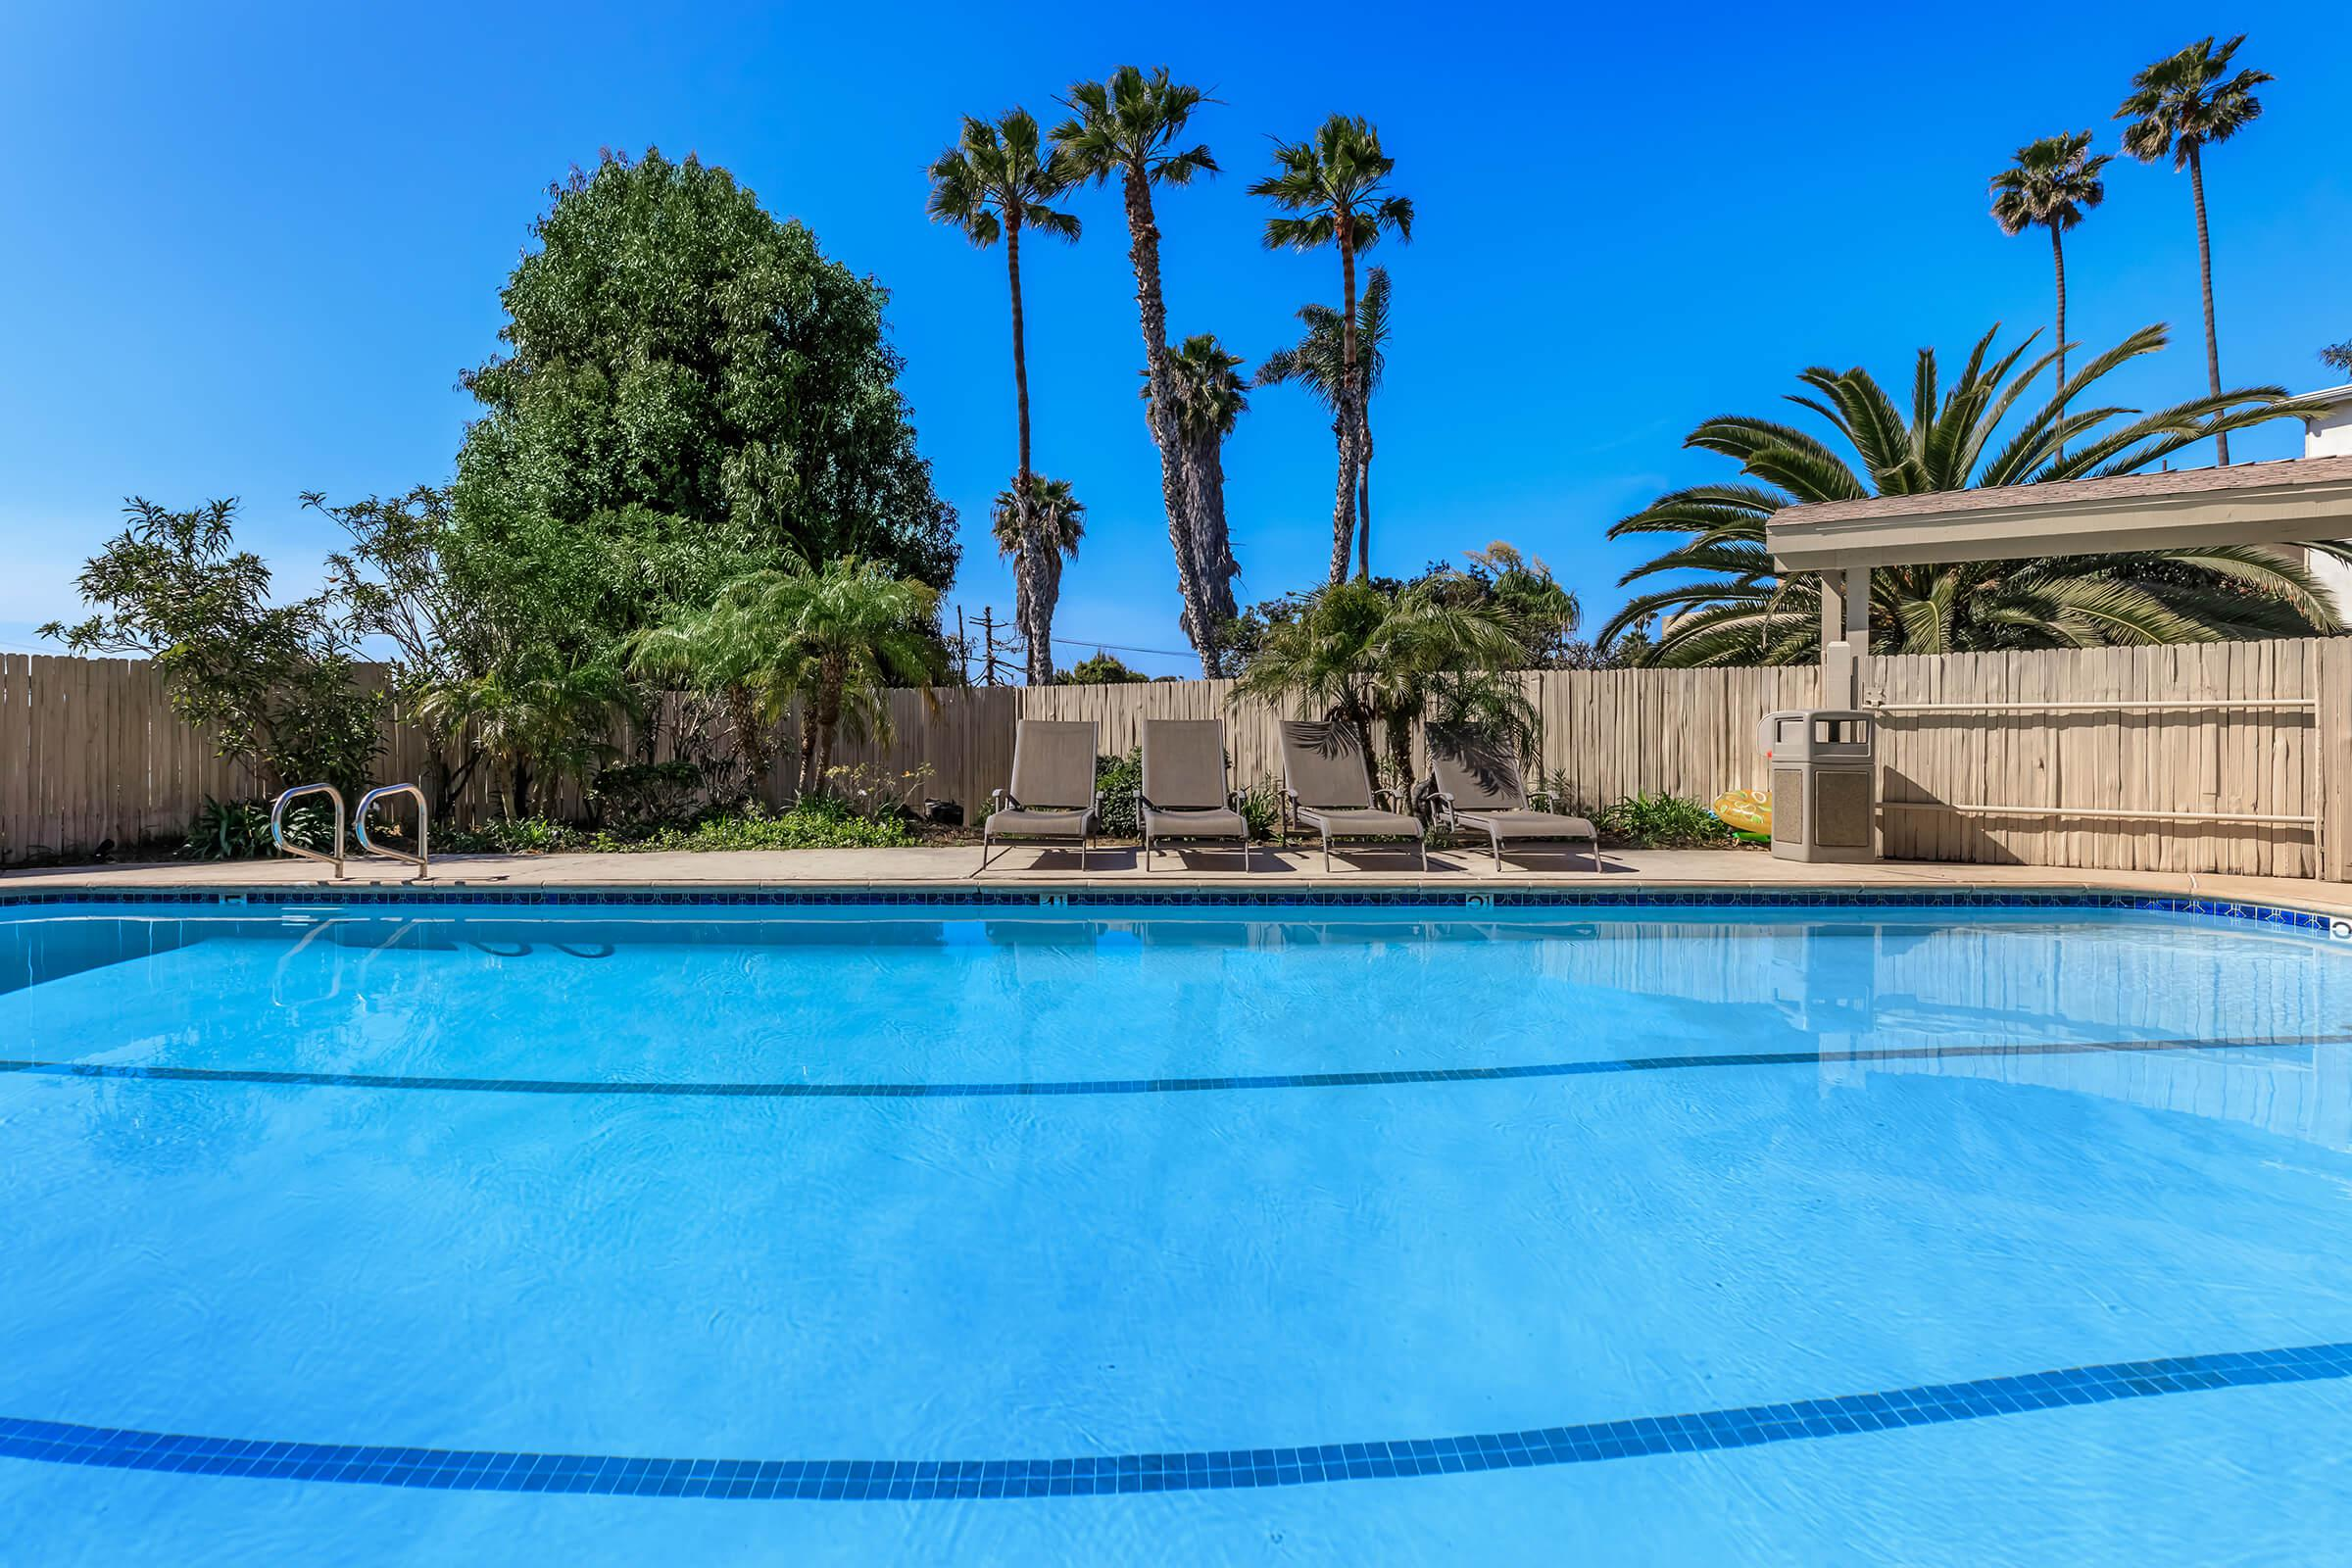 Relax poolside at Casa Del Sur in San Diego, California